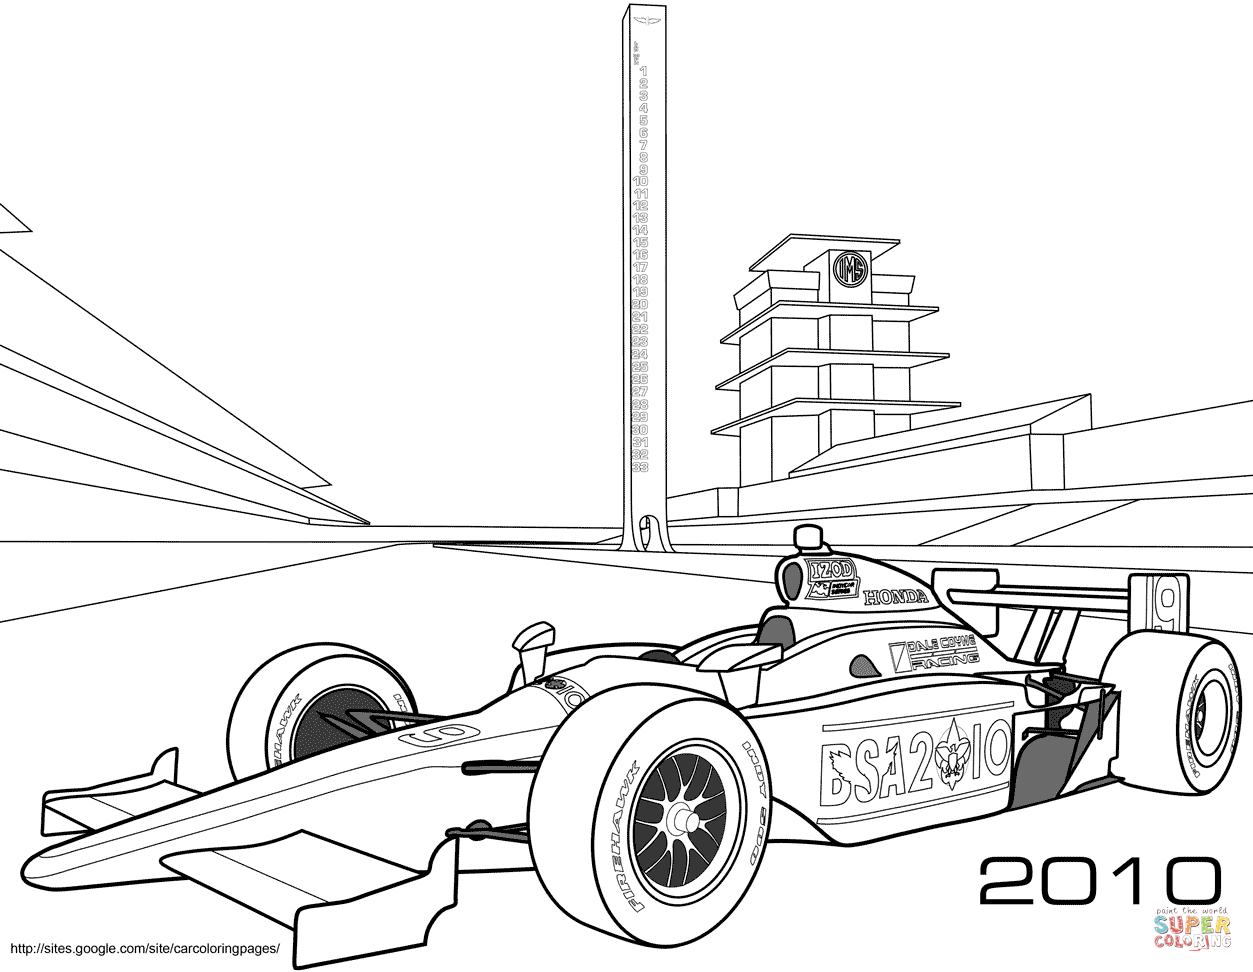 indy 500 coloring pages indy race car coloring page free printable coloring pages indy 500 pages coloring